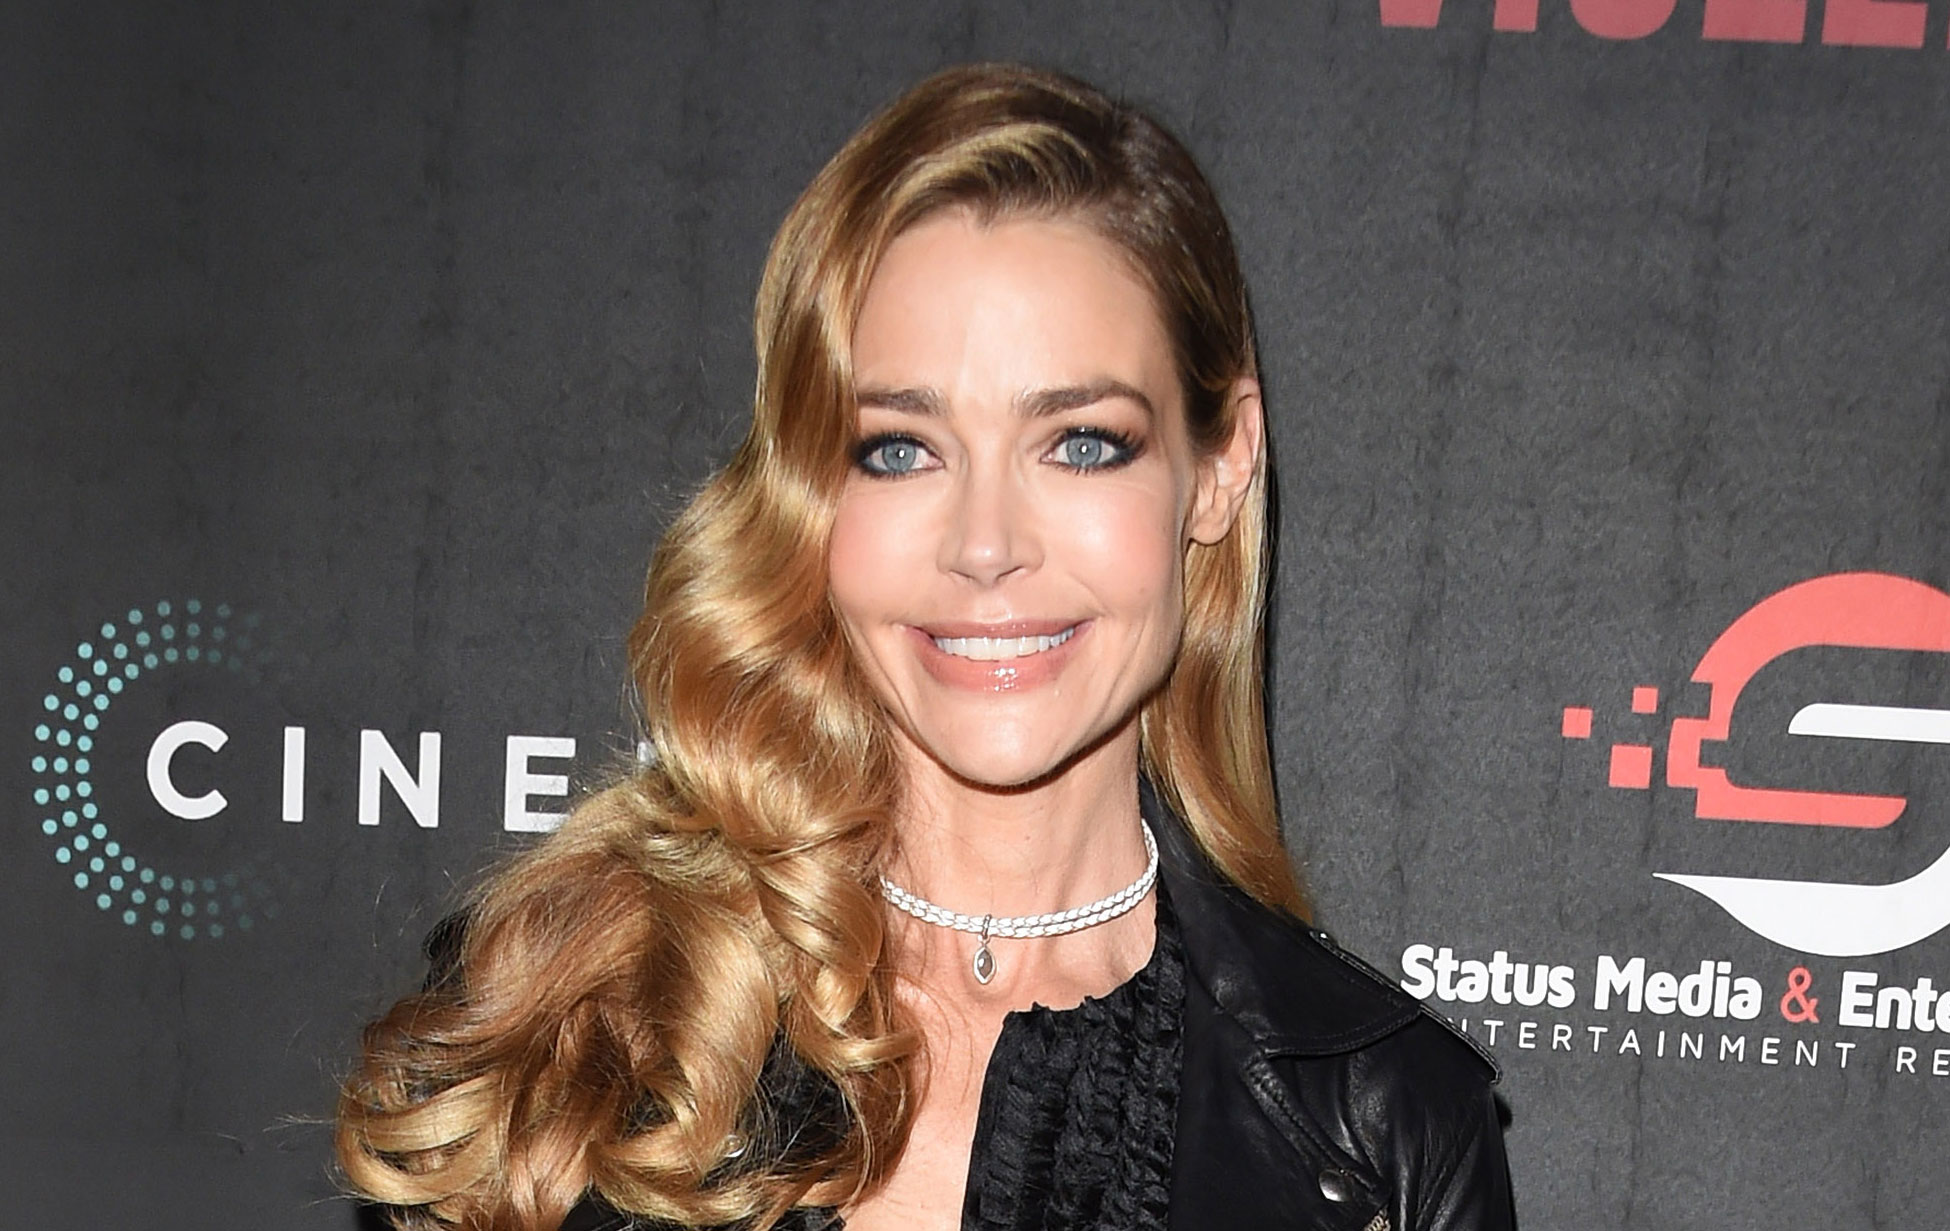 denise richards marries aaron phypers just two days after their engagement